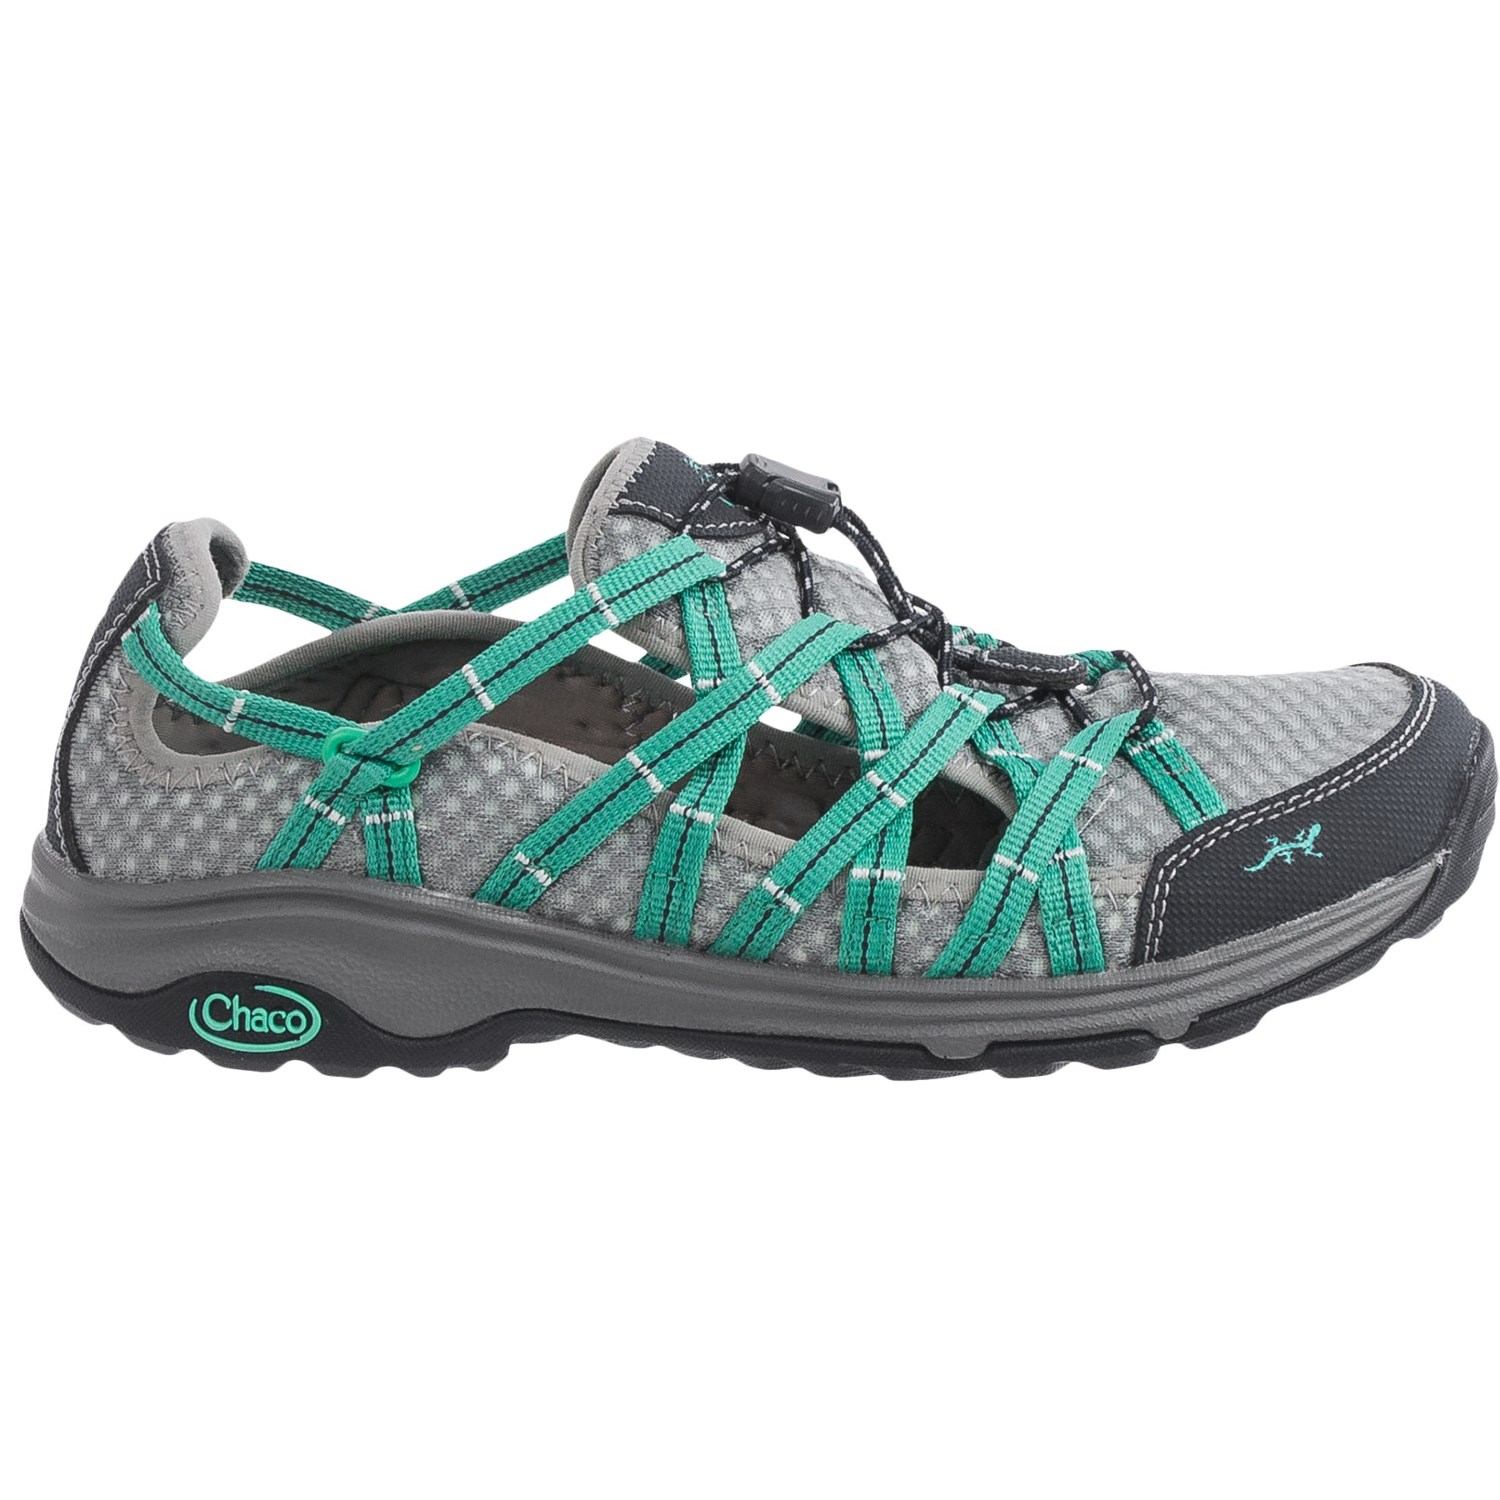 Chaco Outcross Evo Free Shoes Women